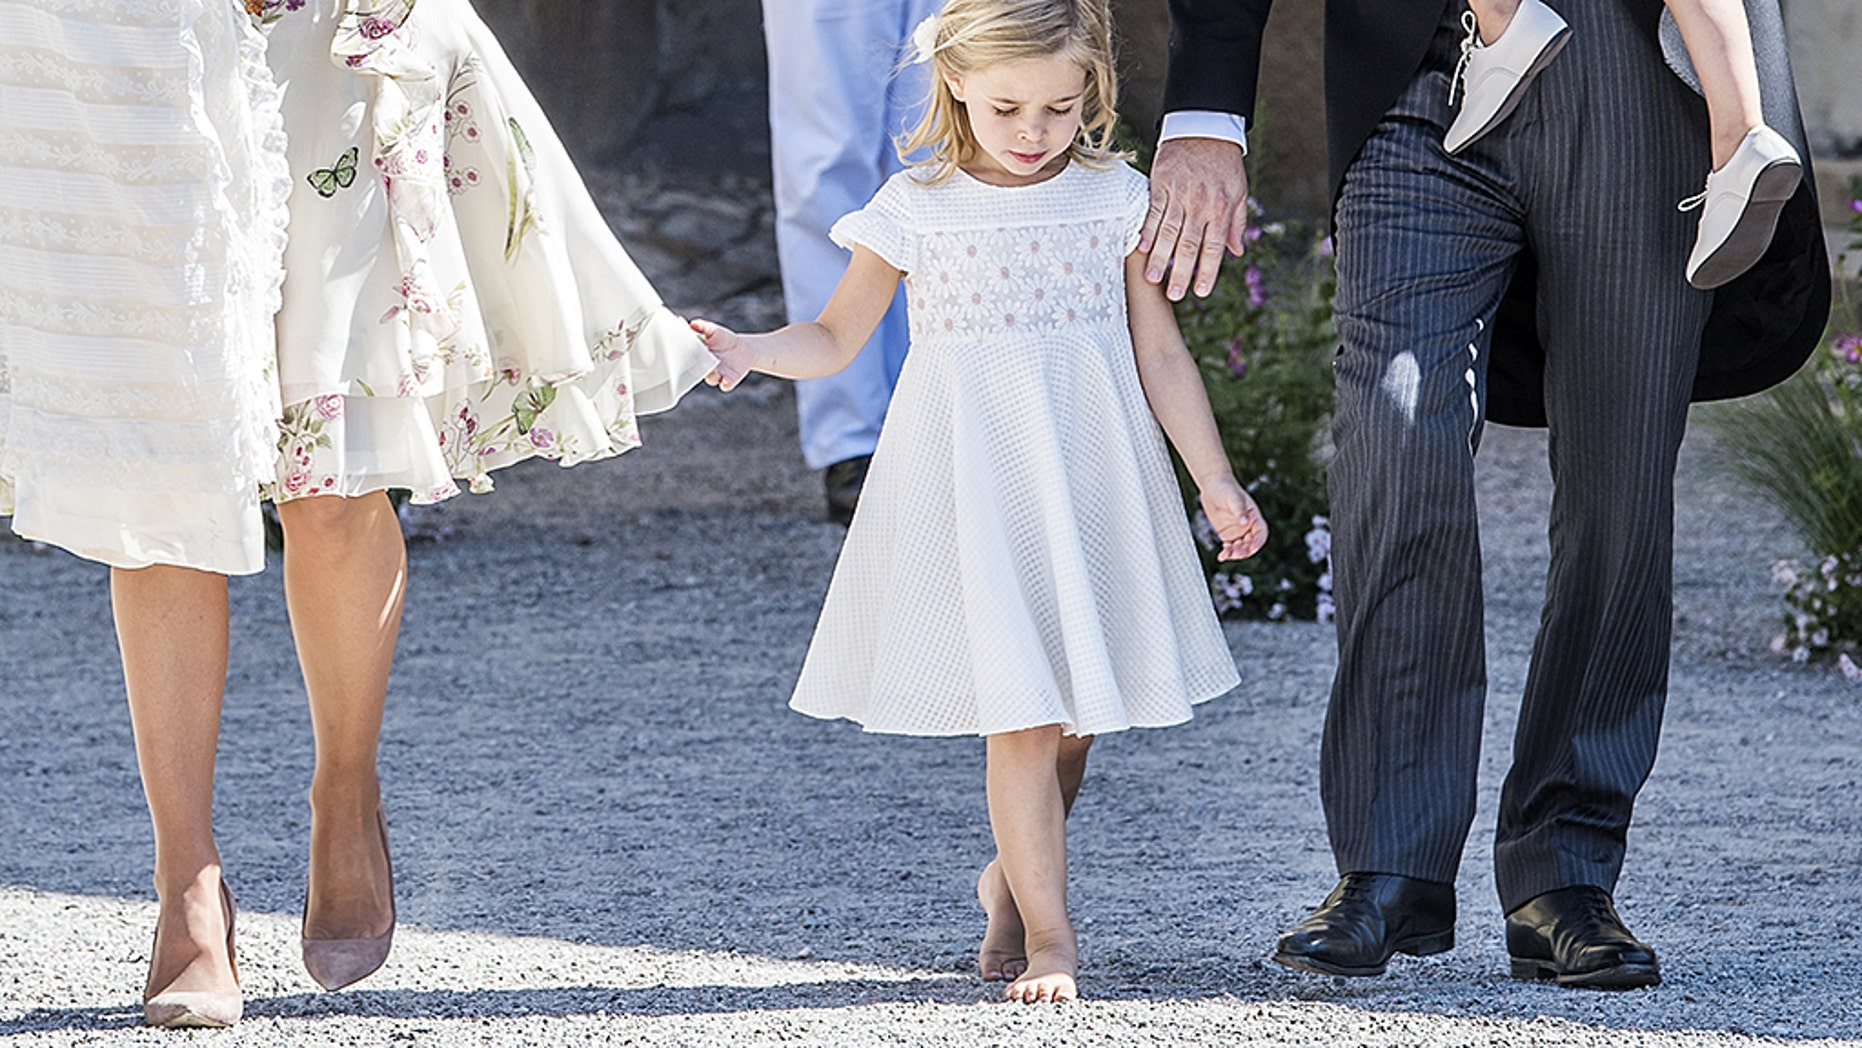 A barefoot Princess Leonore walks along side of her parents at the traditional christening ceremony for her sister, Princess Adrienne.